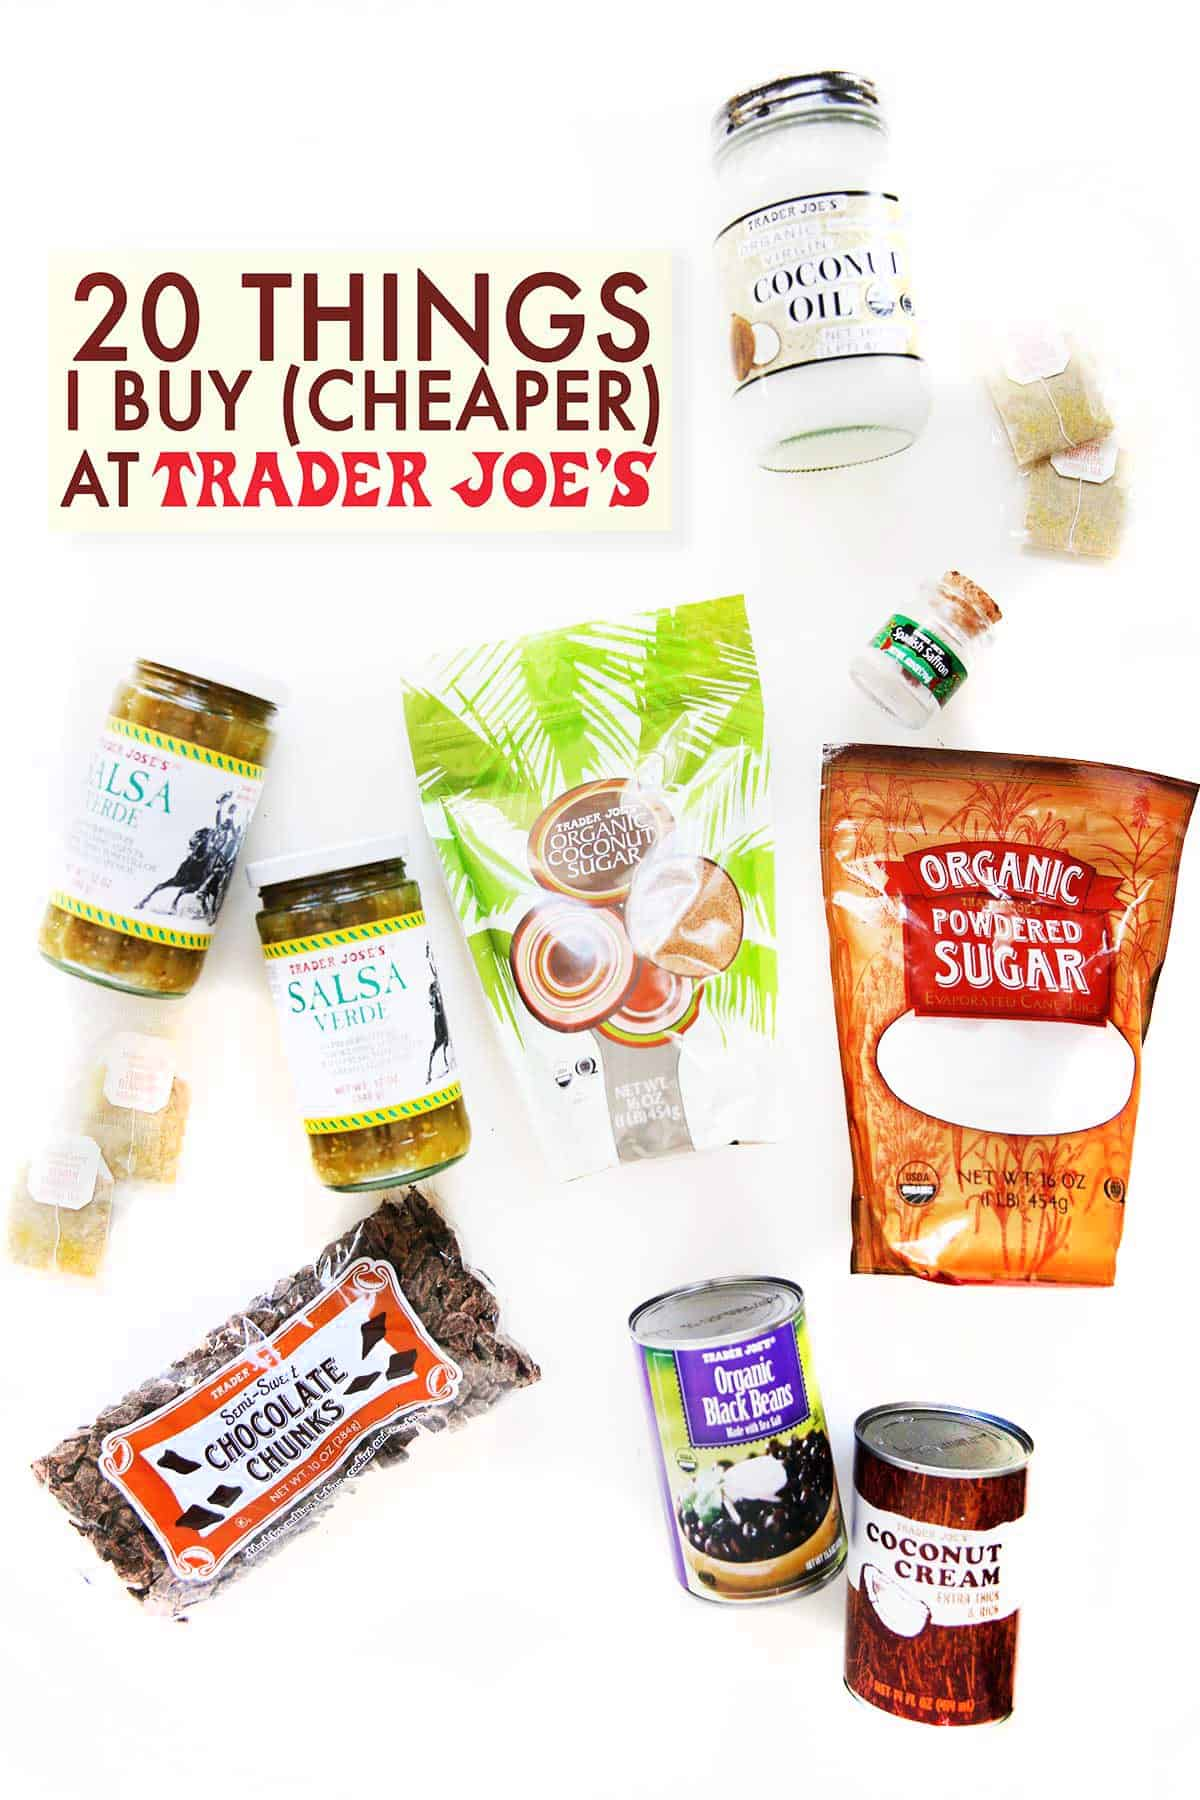 20 Things I Buy (Cheaper) at Trader Joe's